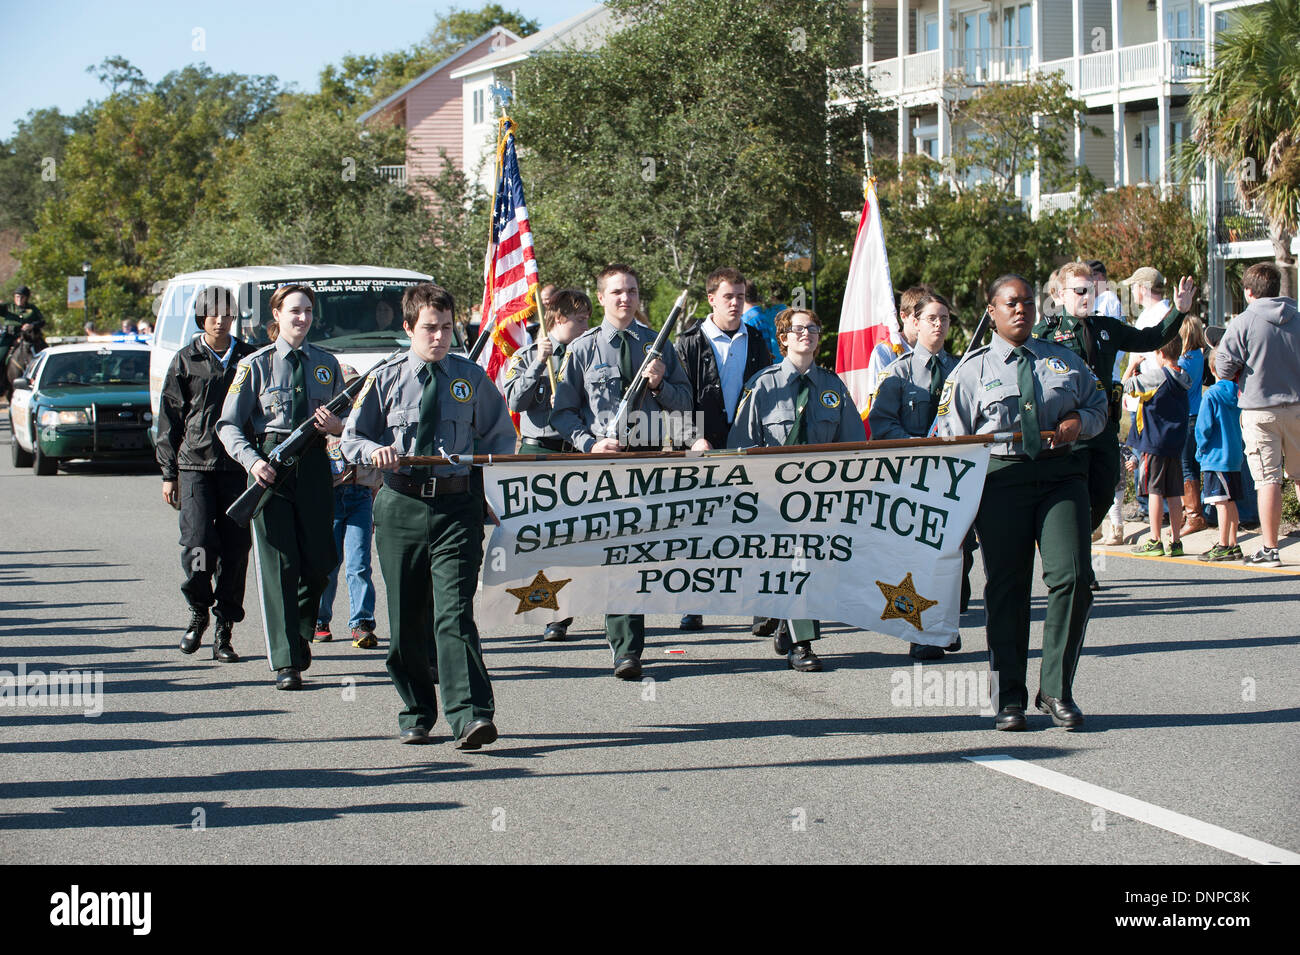 Escambia County Sheriffs Office Explorers march on Veterans Day parade Pensacola Florida USA - Stock Image